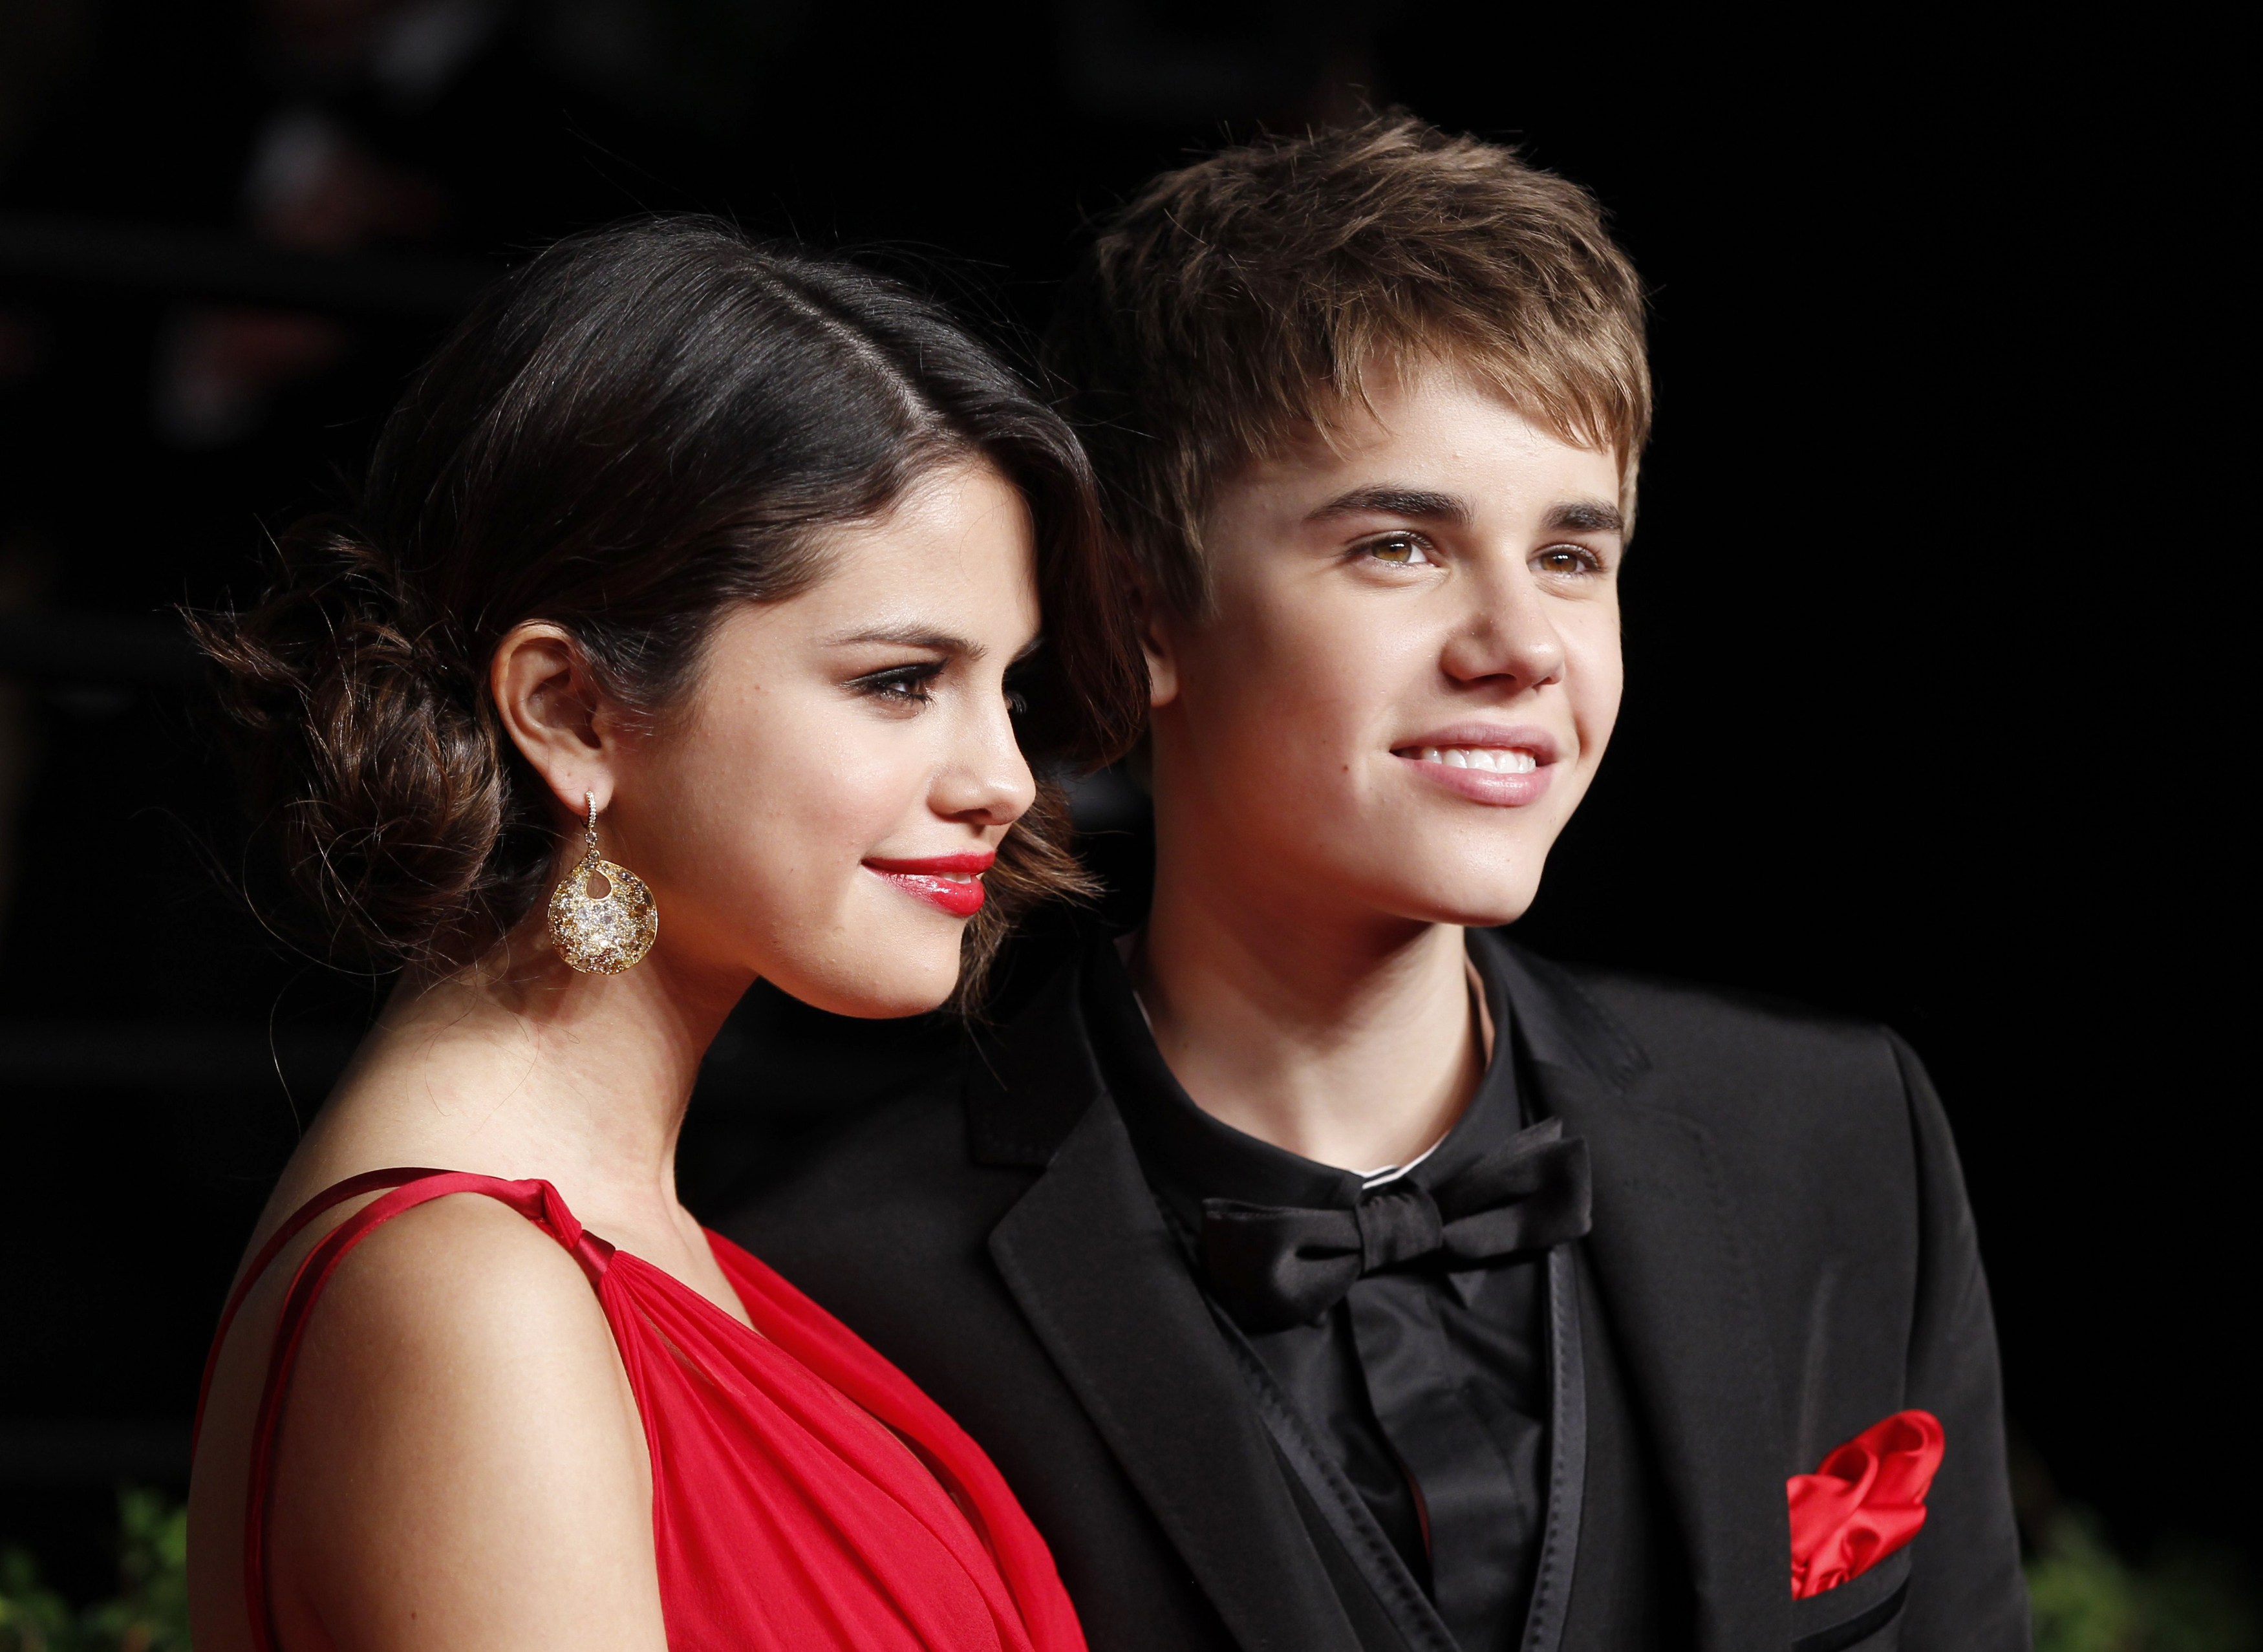 halsey and justin bieber relationship with selena